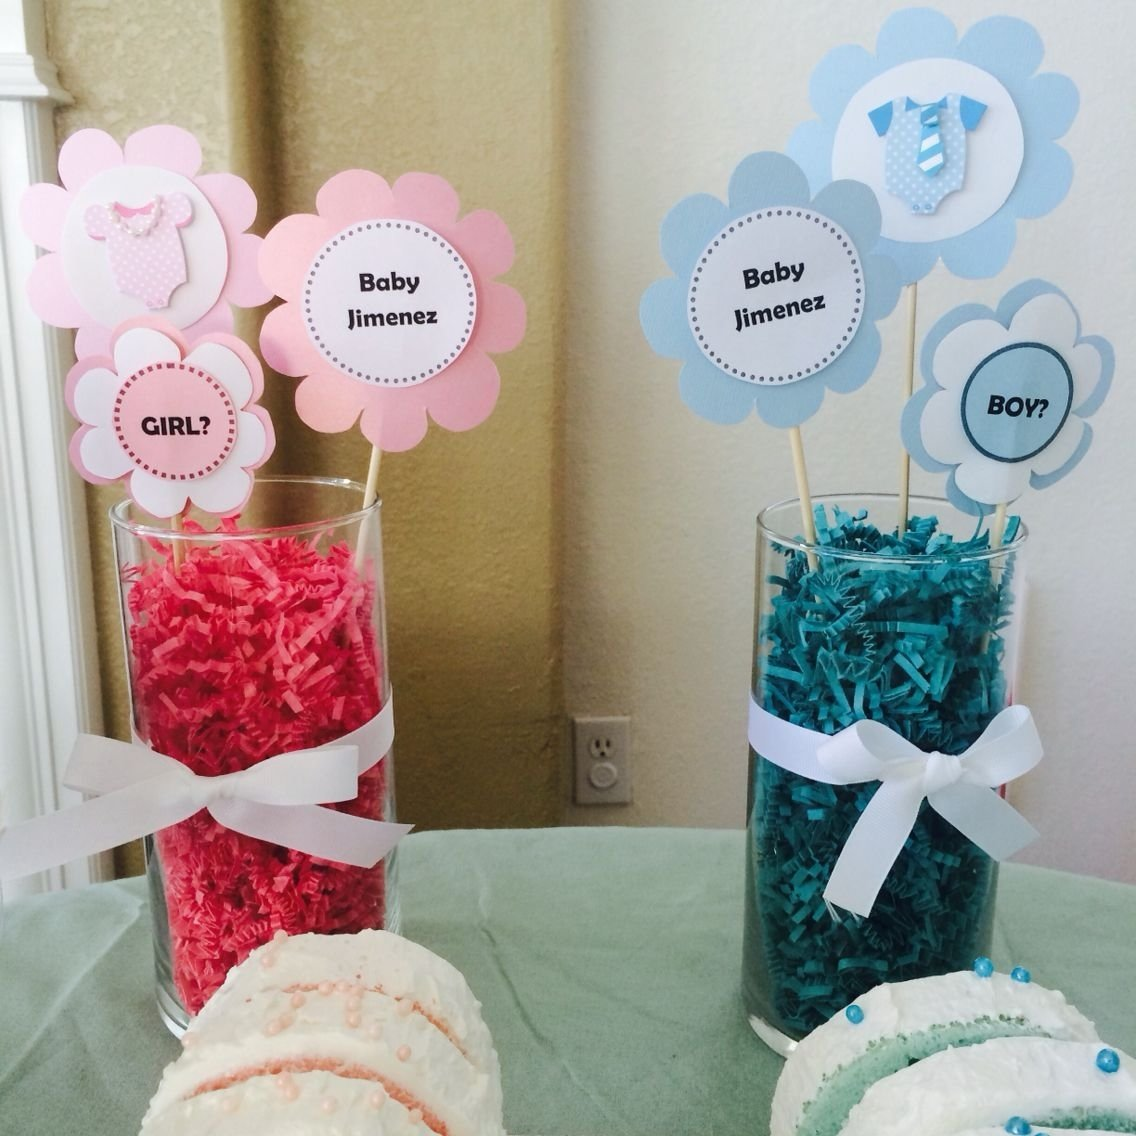 diy centerpieces for gender reveal party | gender reveal party ideas